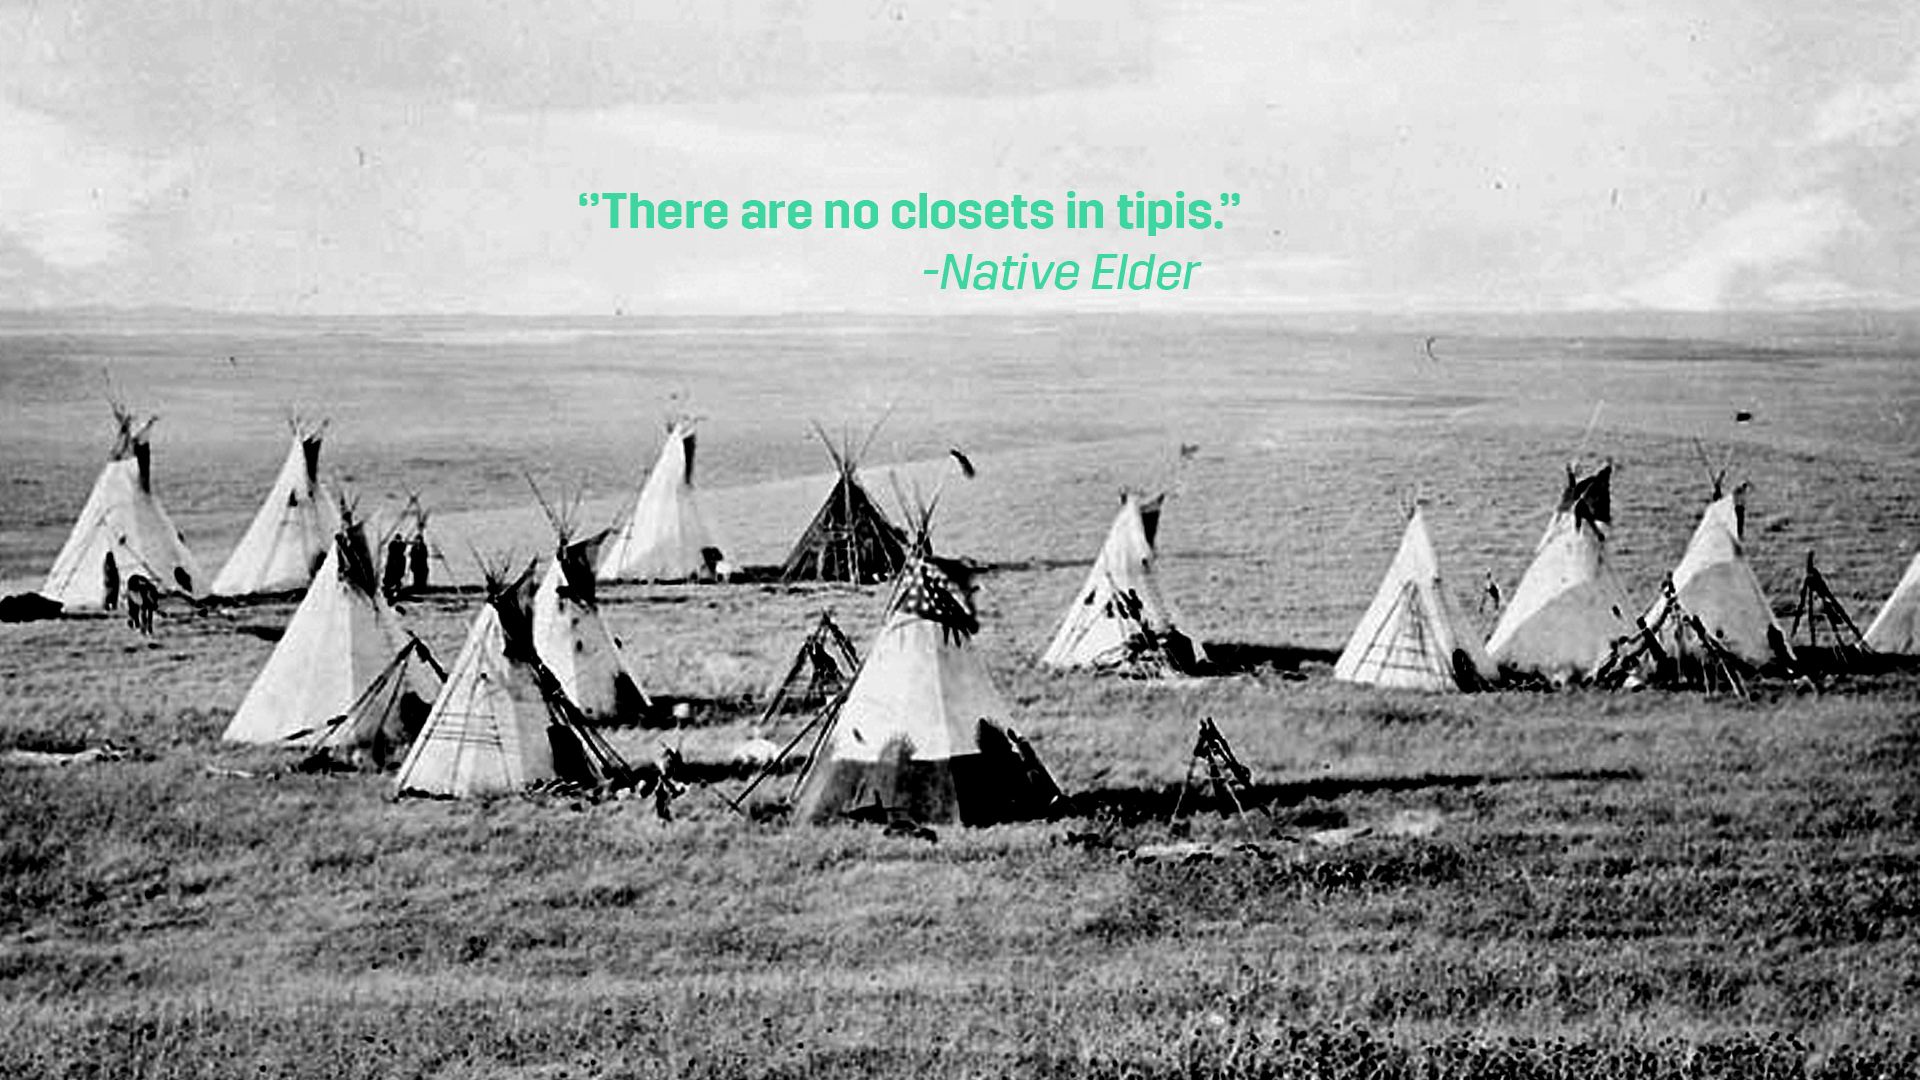 LGBTQ2S TIPI QUOTE 2